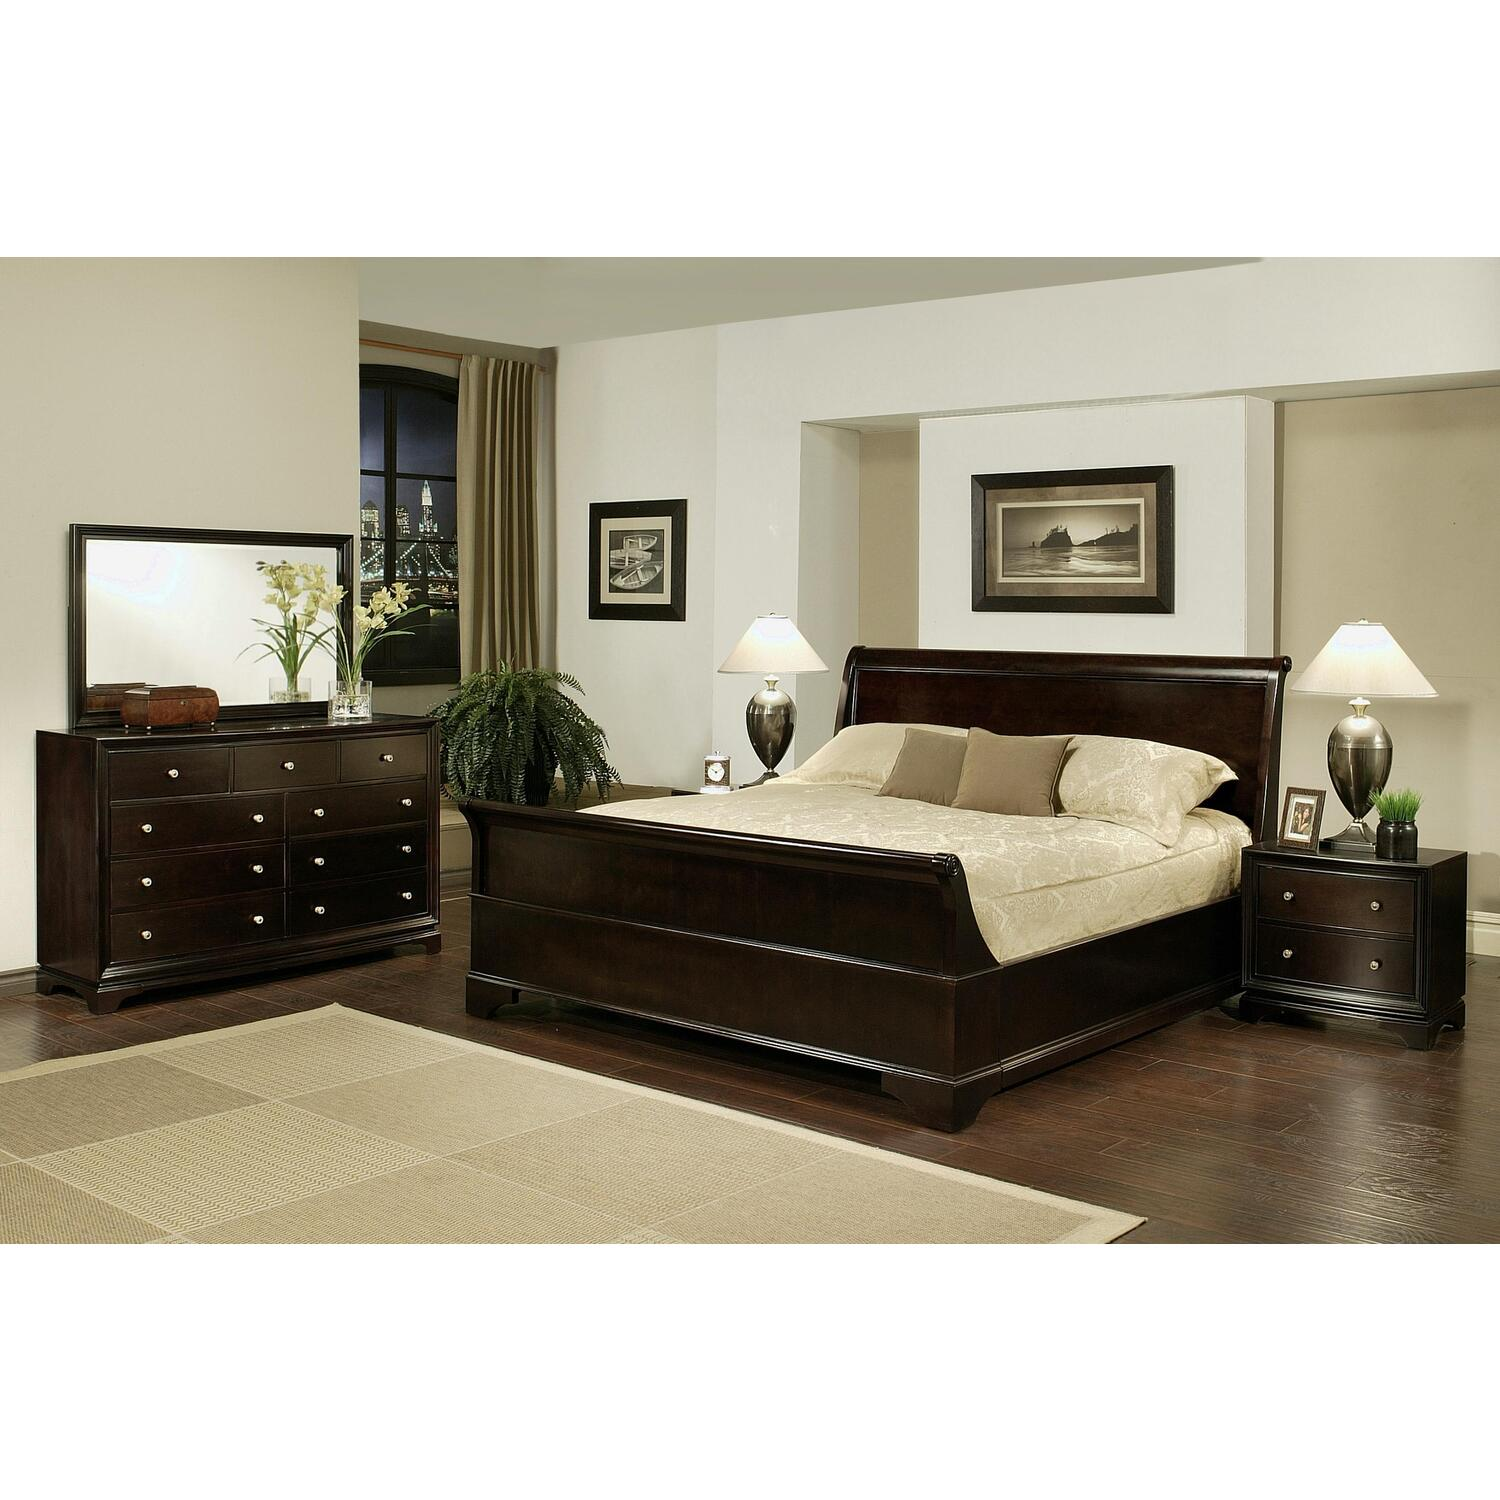 piece sleigh queen size bedroom set by oj commerce abbl141 3